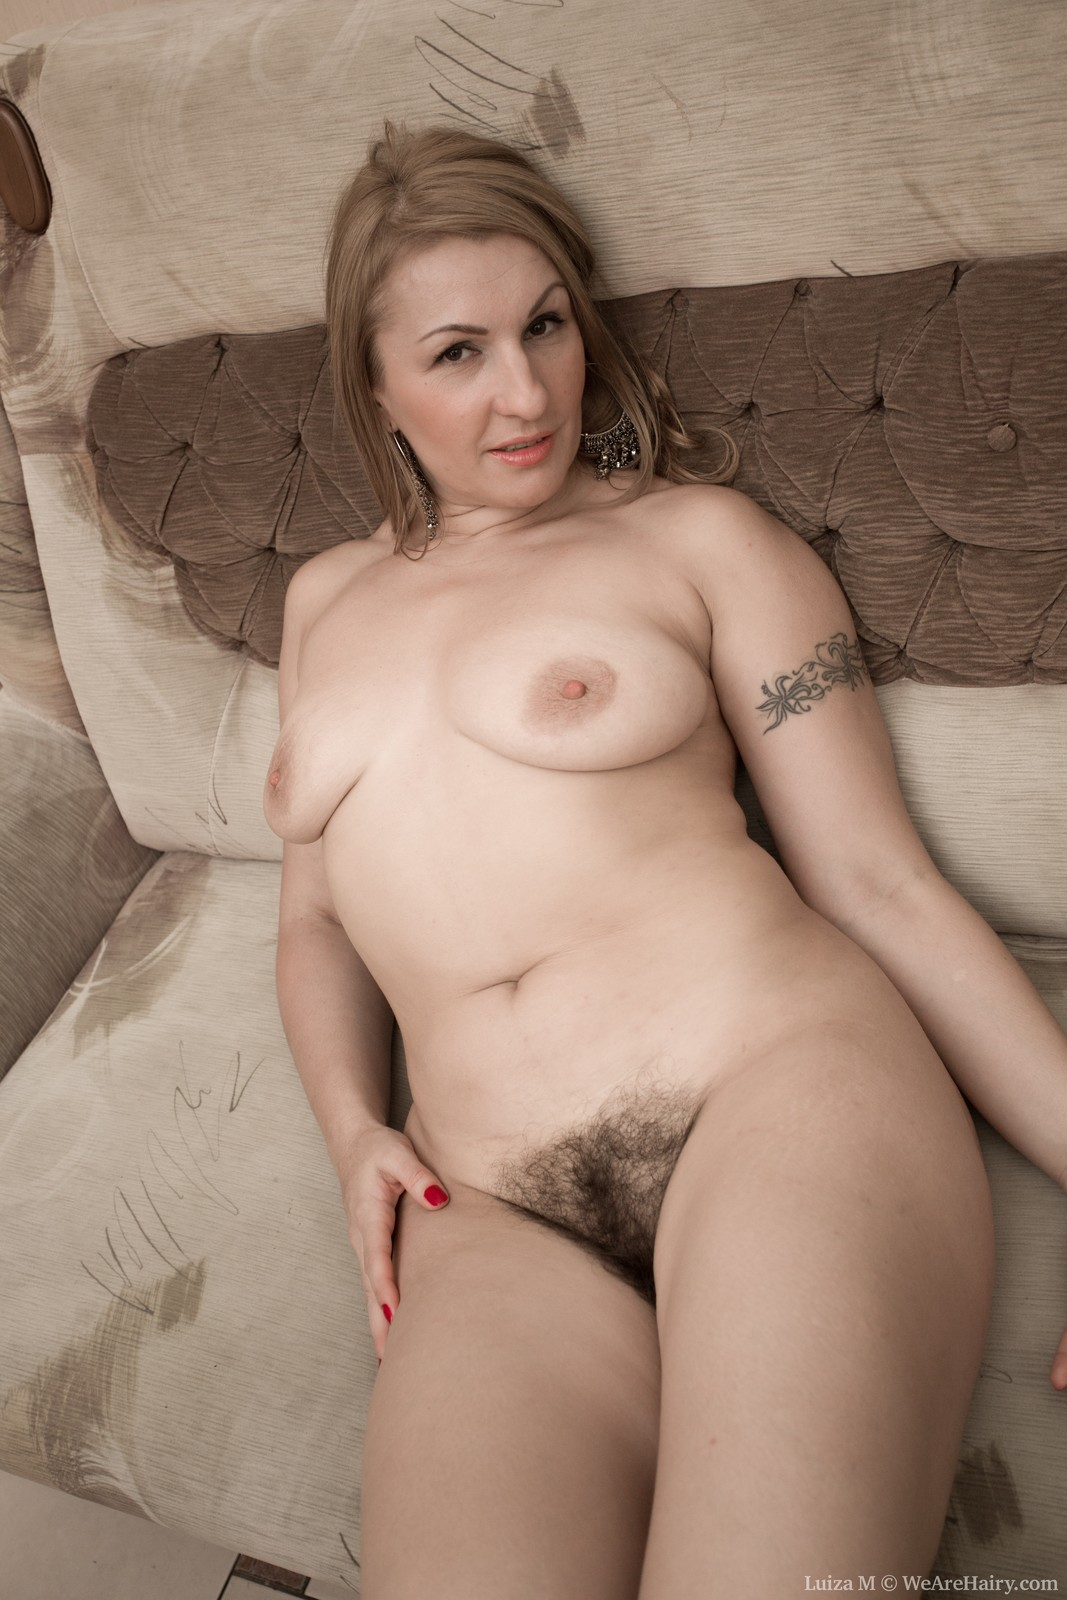 Really. Nude milf pussy ukraine simply excellent